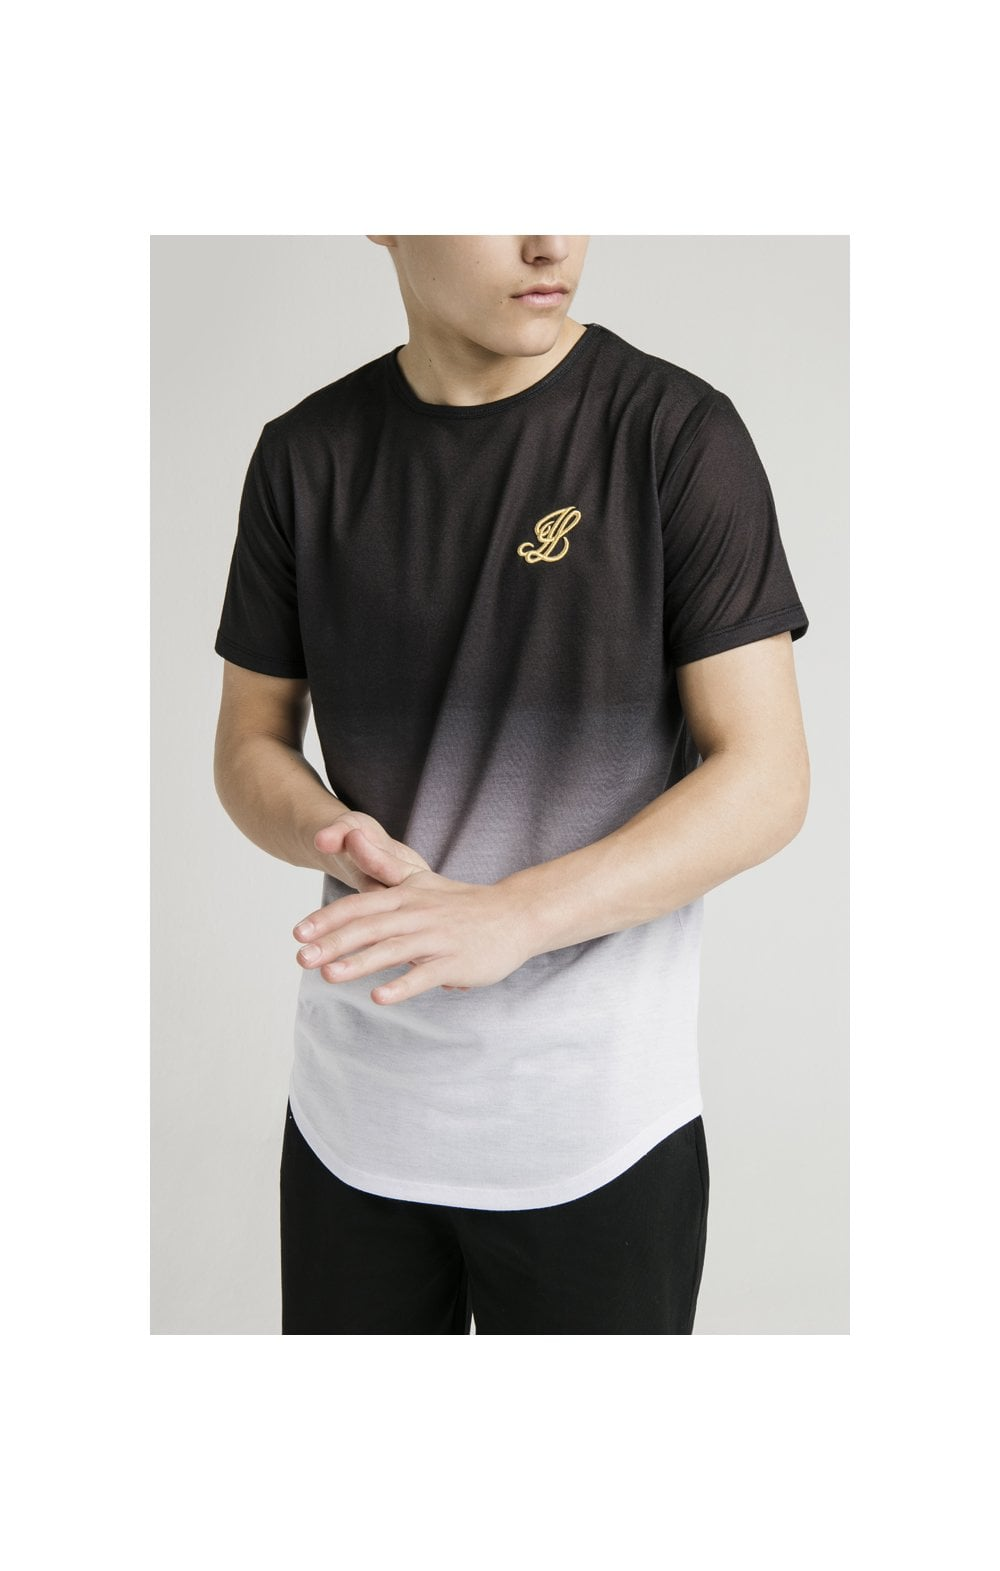 Load image into Gallery viewer, Illusive London S/S Fade Tee - Black & White